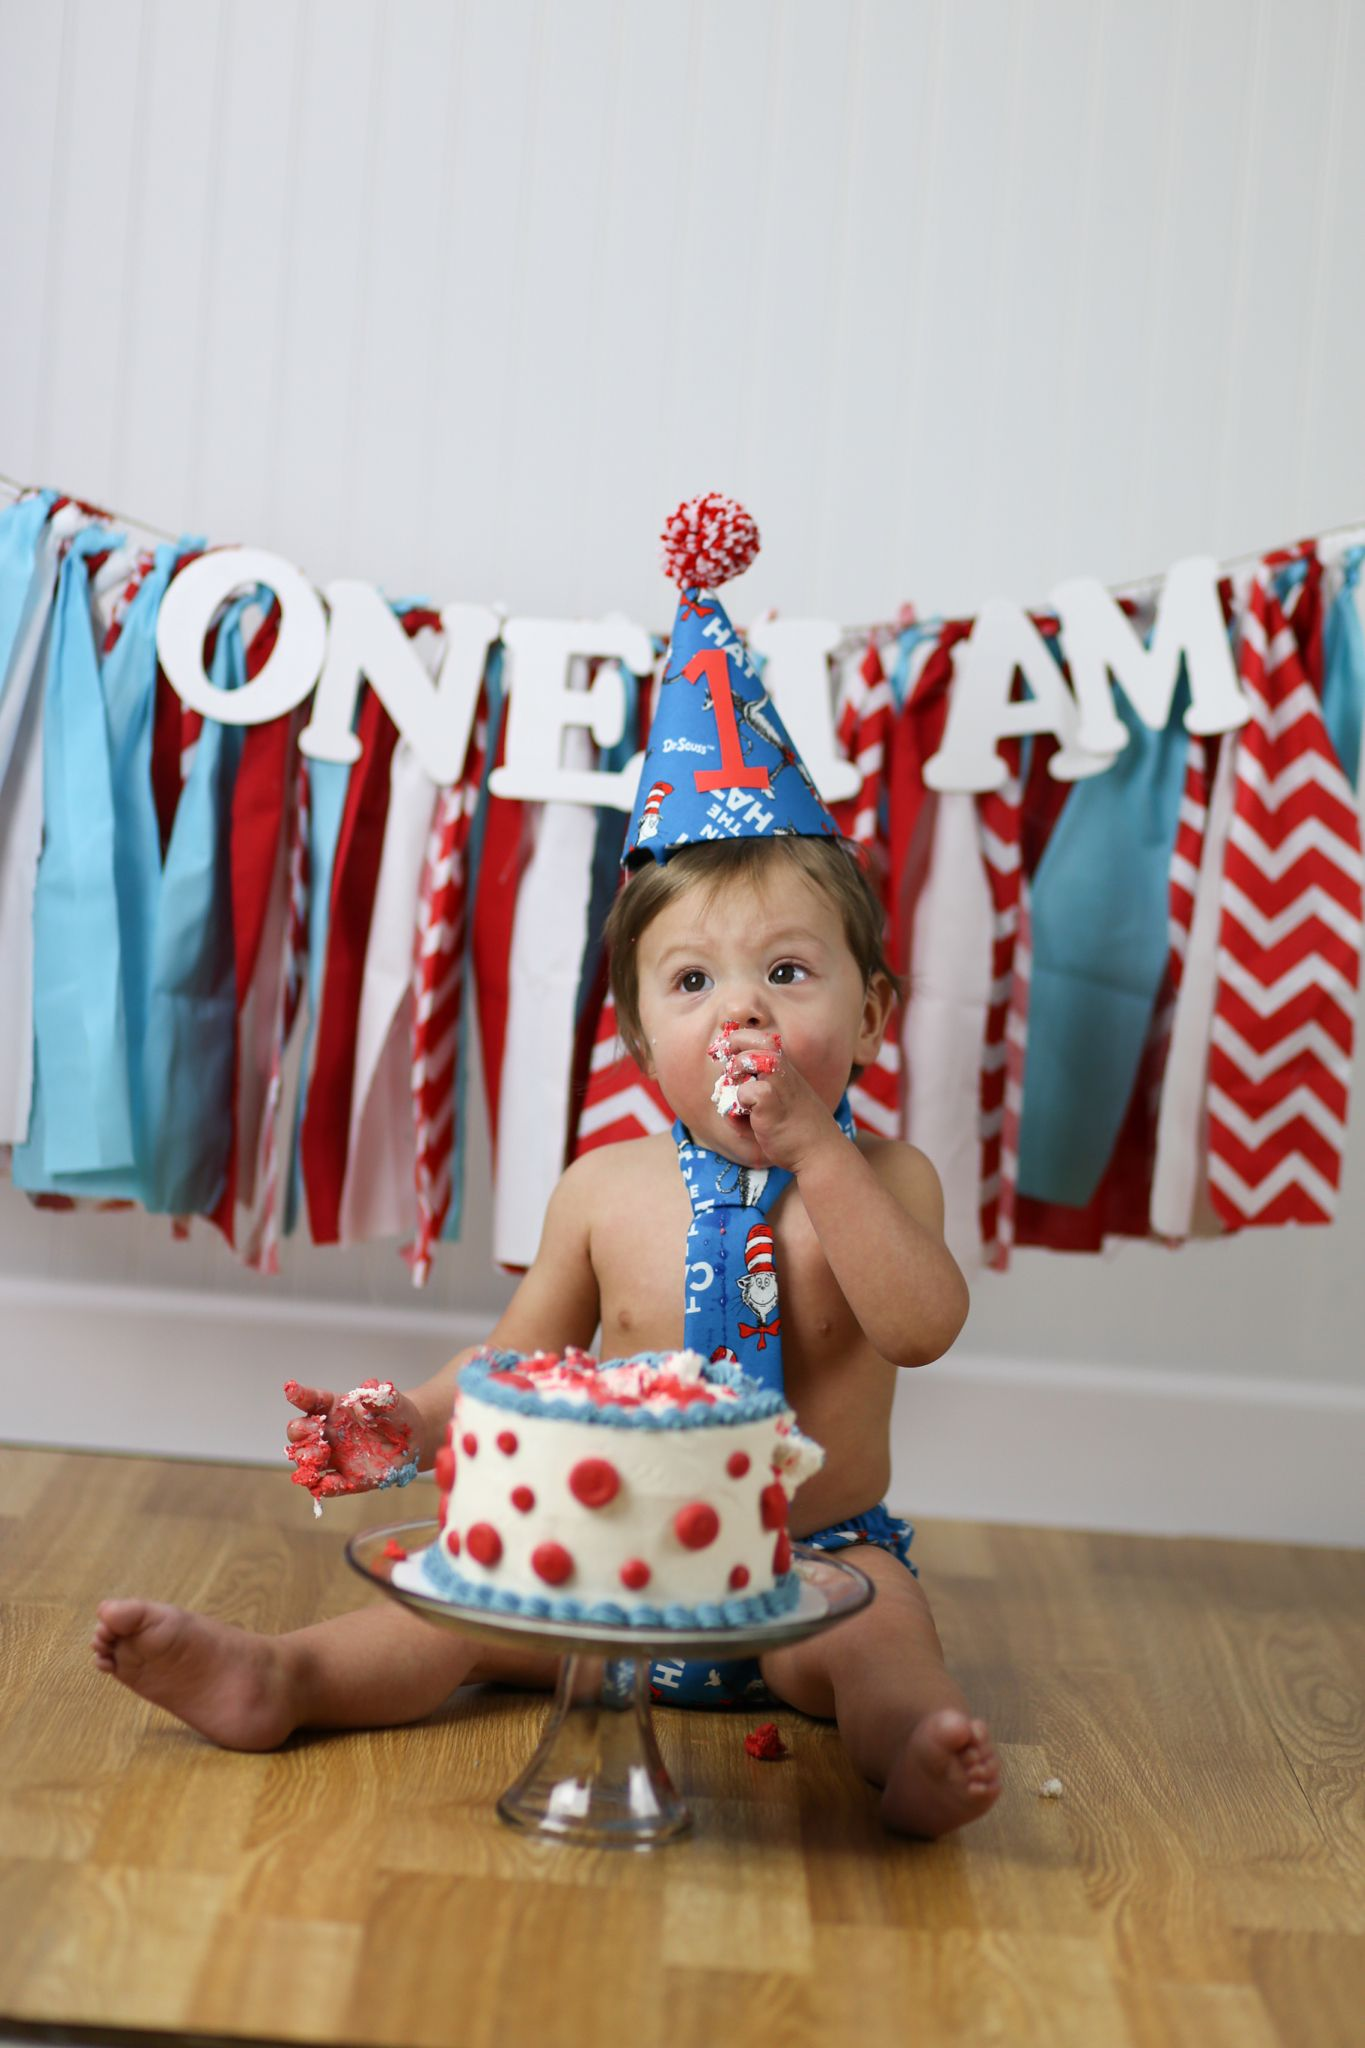 Dr Seuss 1st Birthday Pictures With Smash Cake Outfit From Etsy